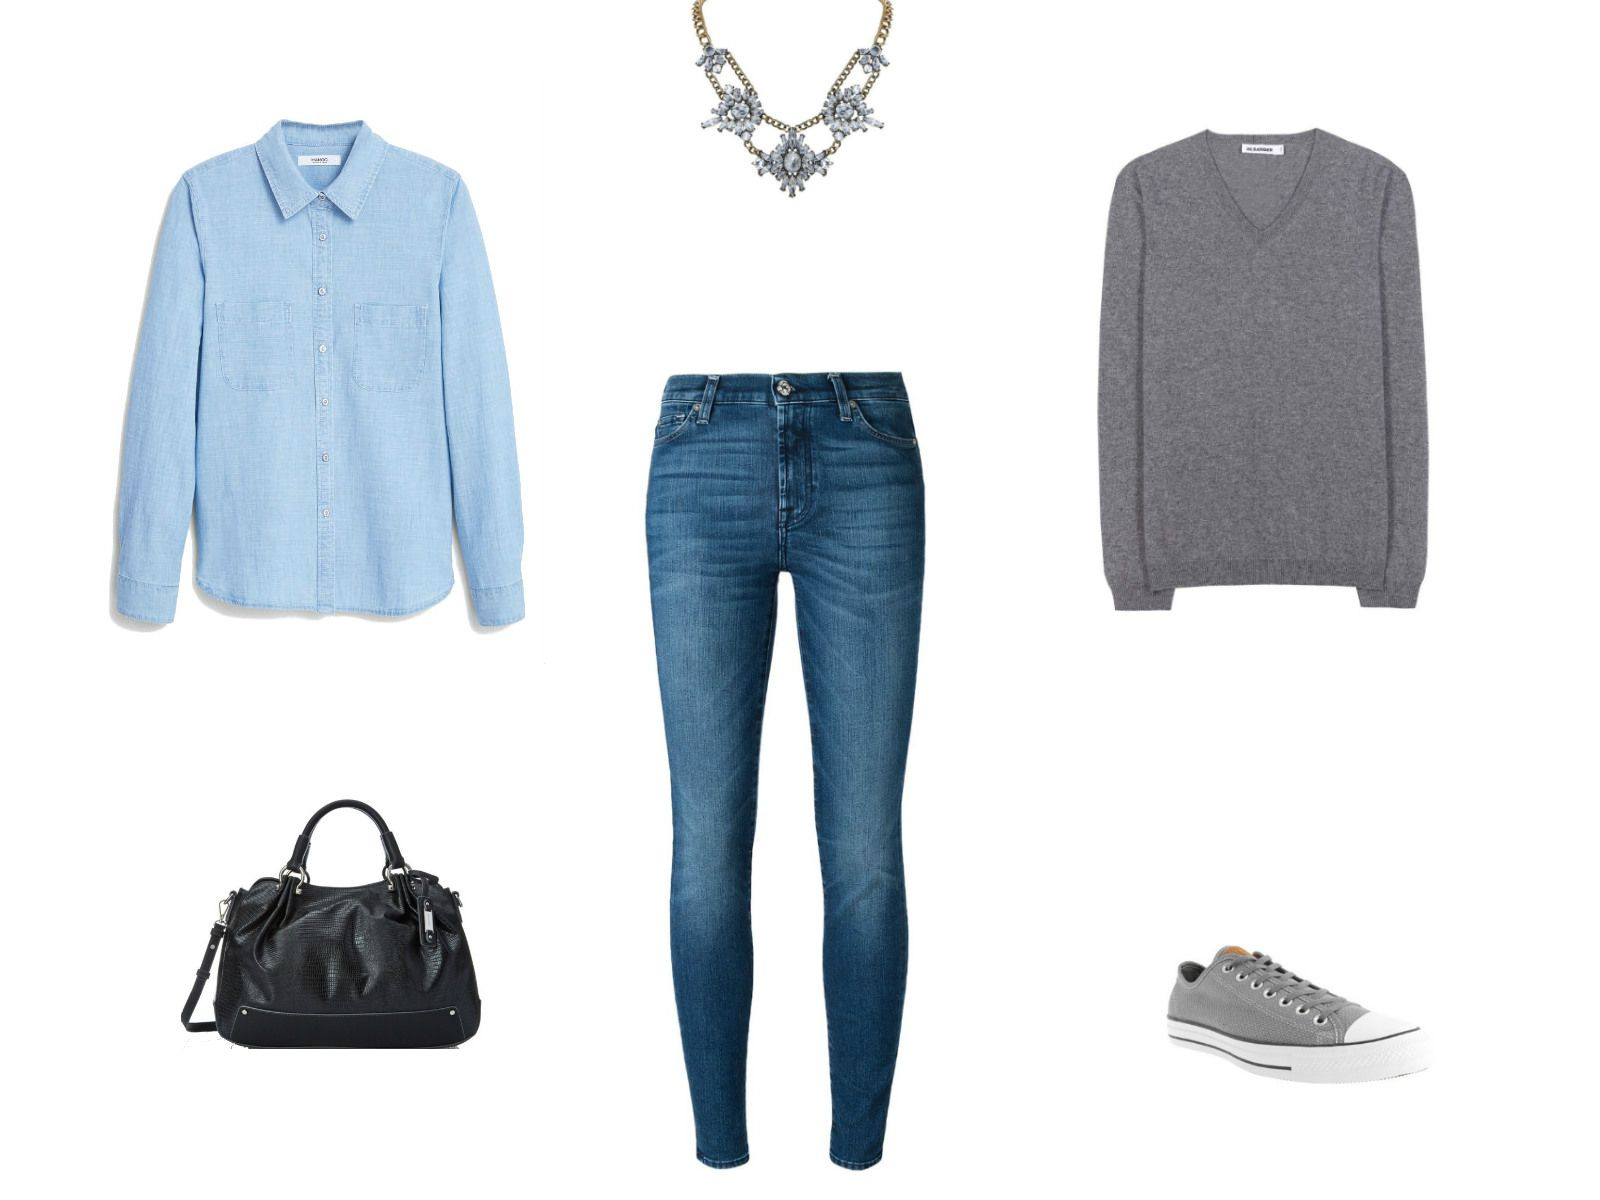 51a39131fe Denim shirt and jeans with a sweater outfit. Sweater weather inspiration for  wearing ...